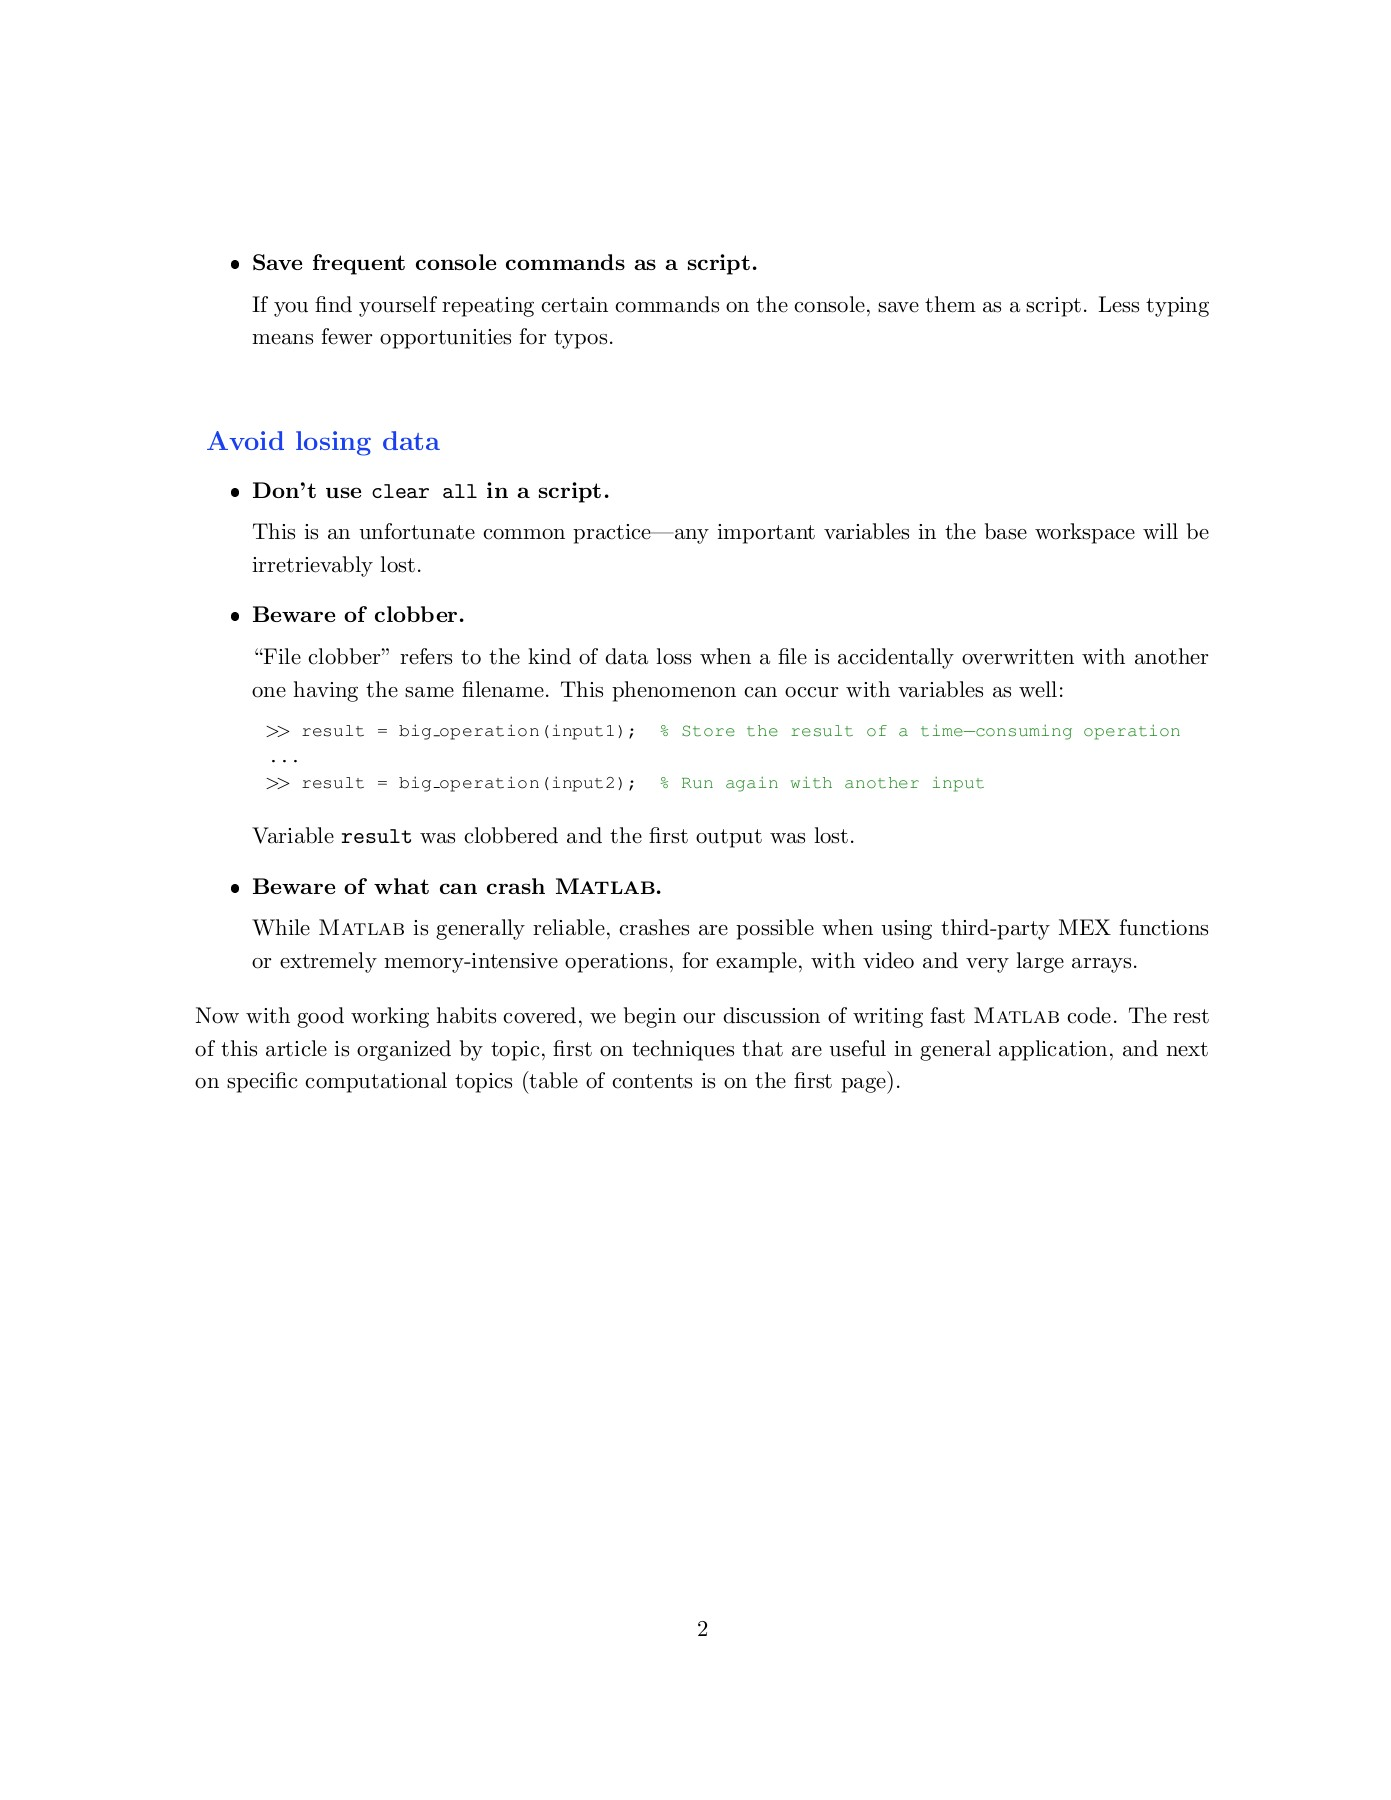 Writing Fast MATLAB Code - SAL Pages 1 - 33 - Text Version